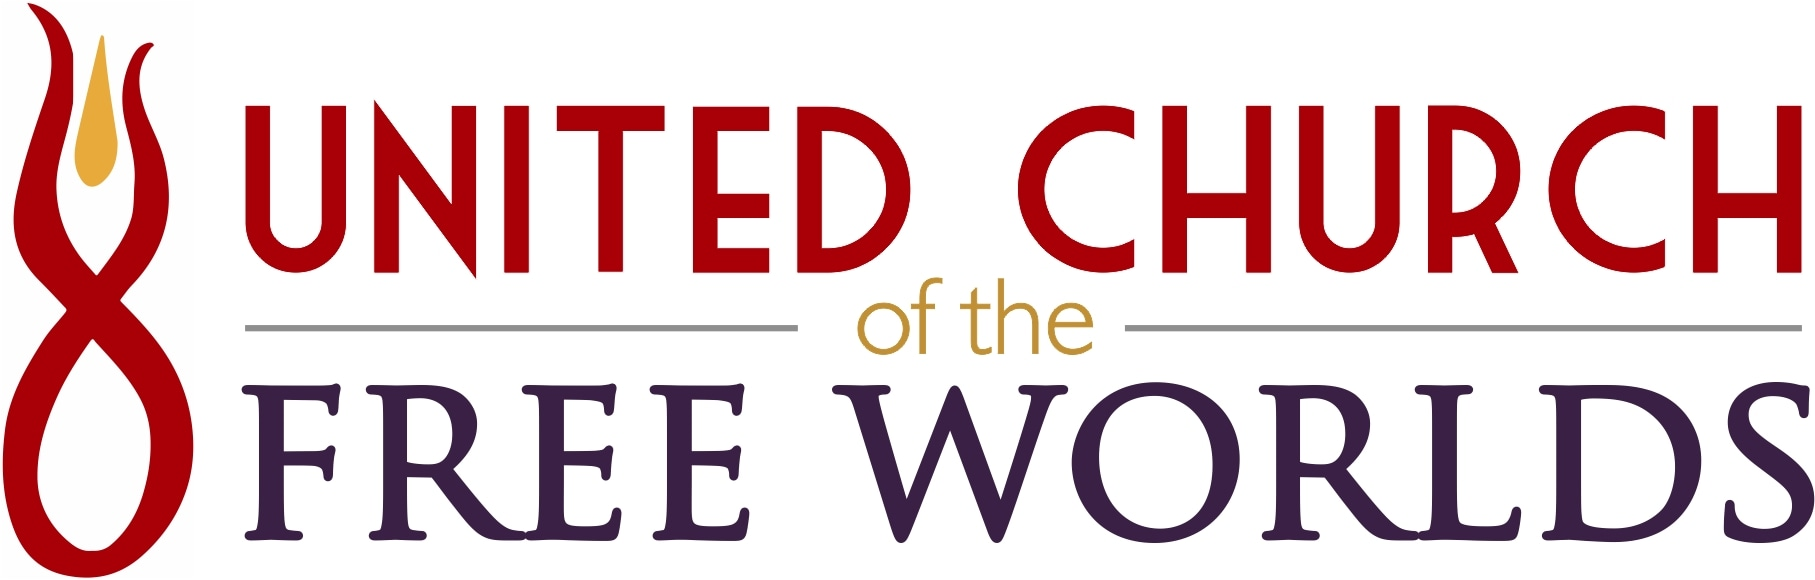 United Church of the Free Worlds